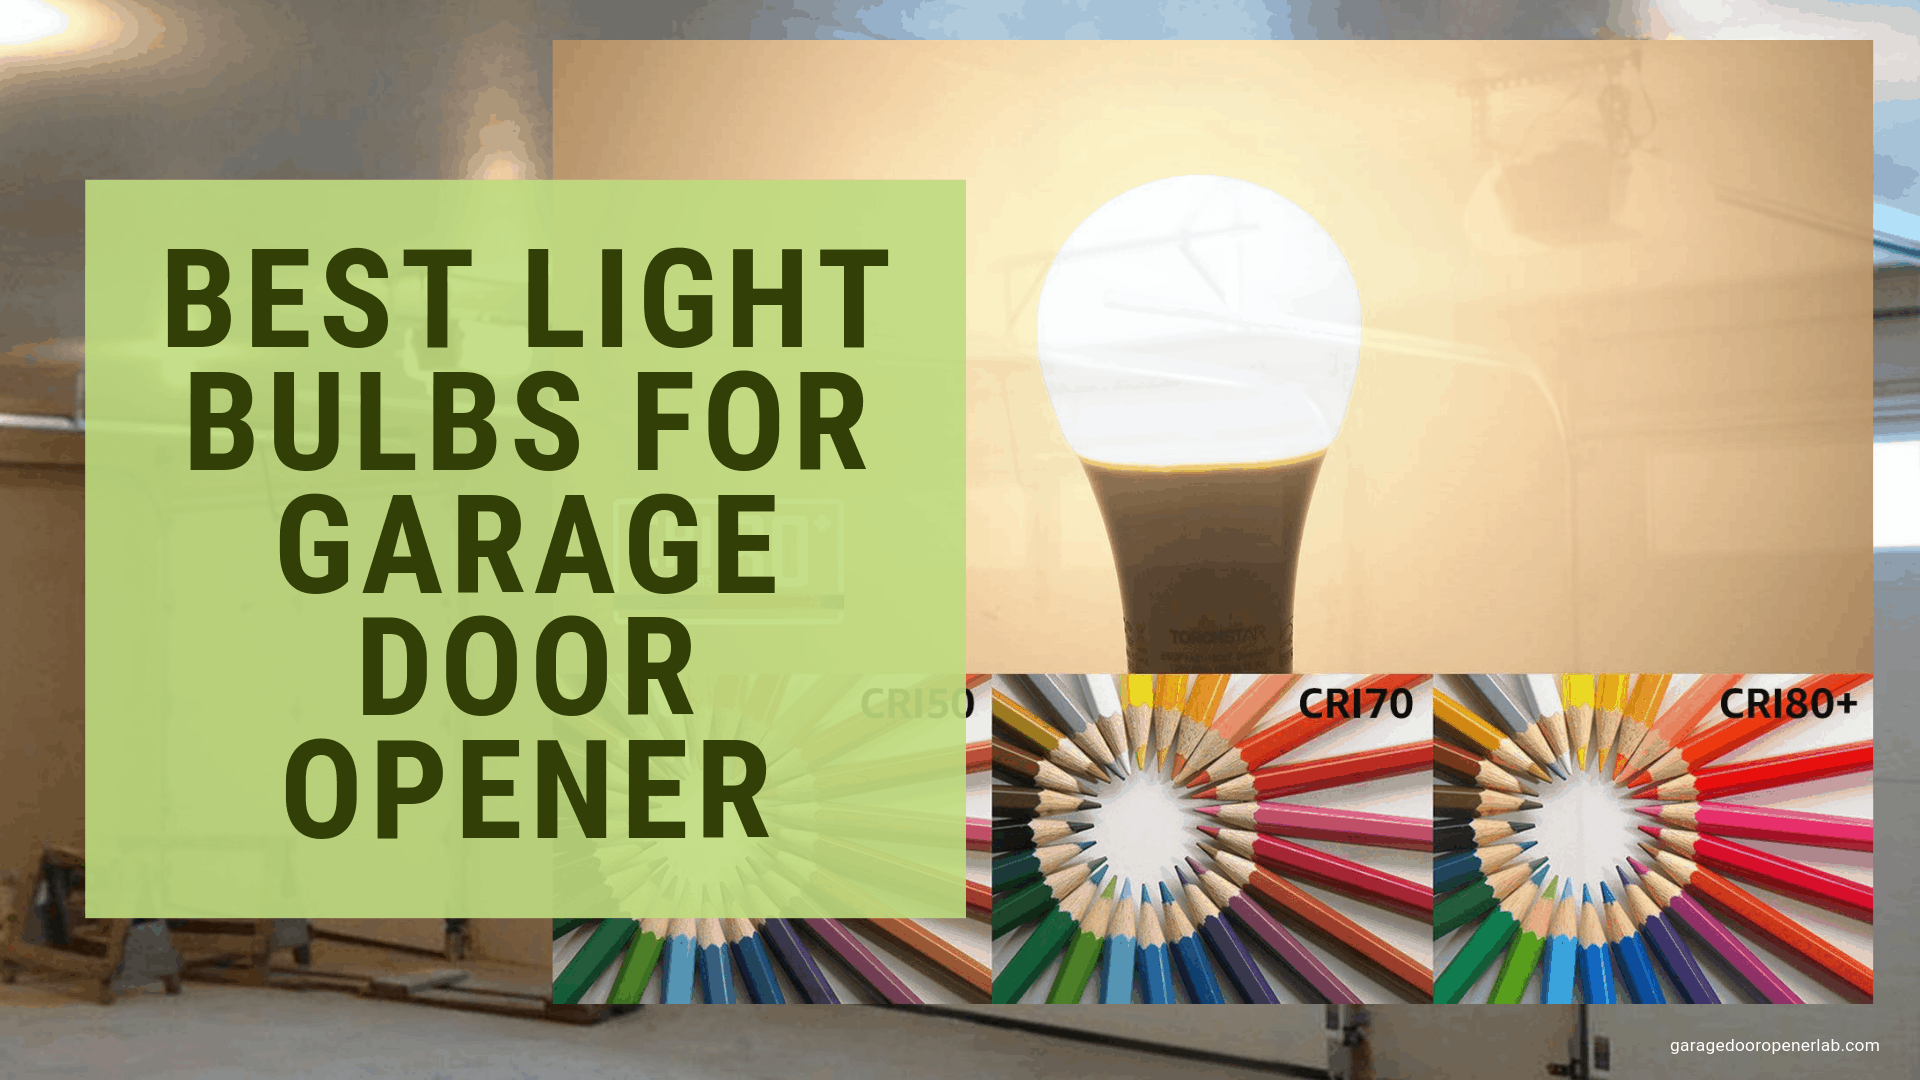 Best Light Bulbs For Garage Door Opener